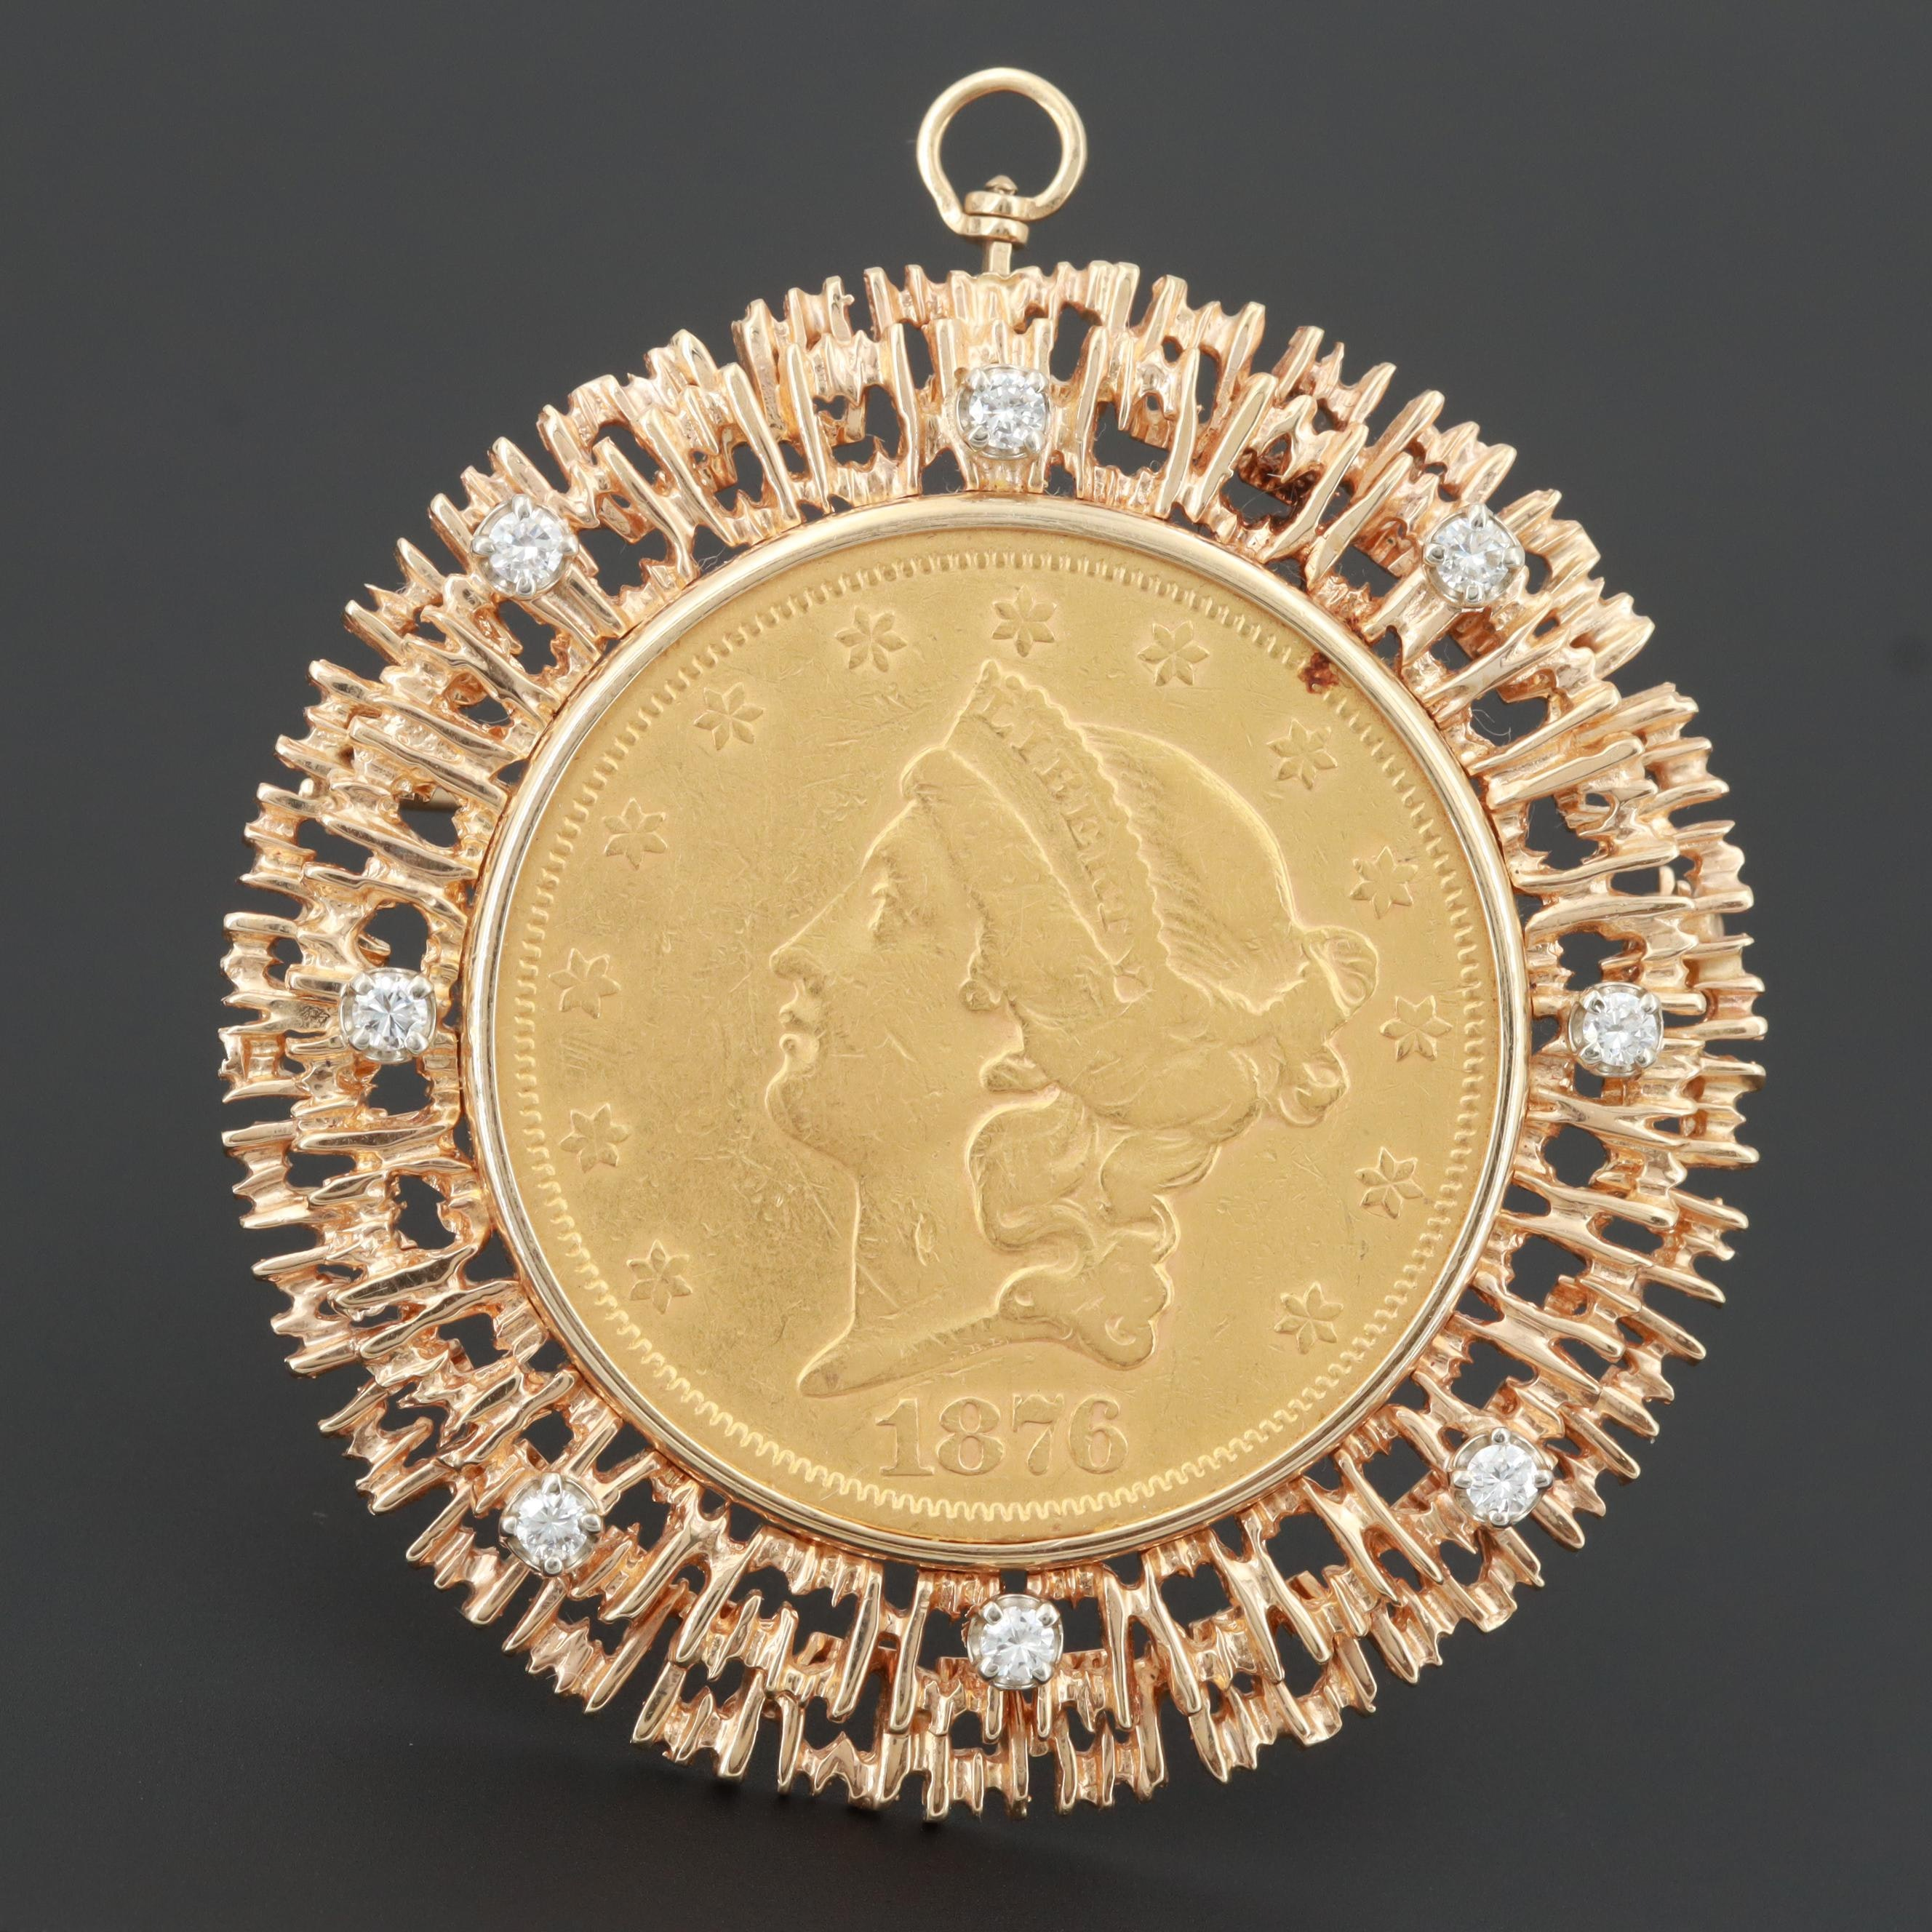 14K Diamond Converter Brooch with 1876 Liberty Head $20 Gold Double Eagle Coin